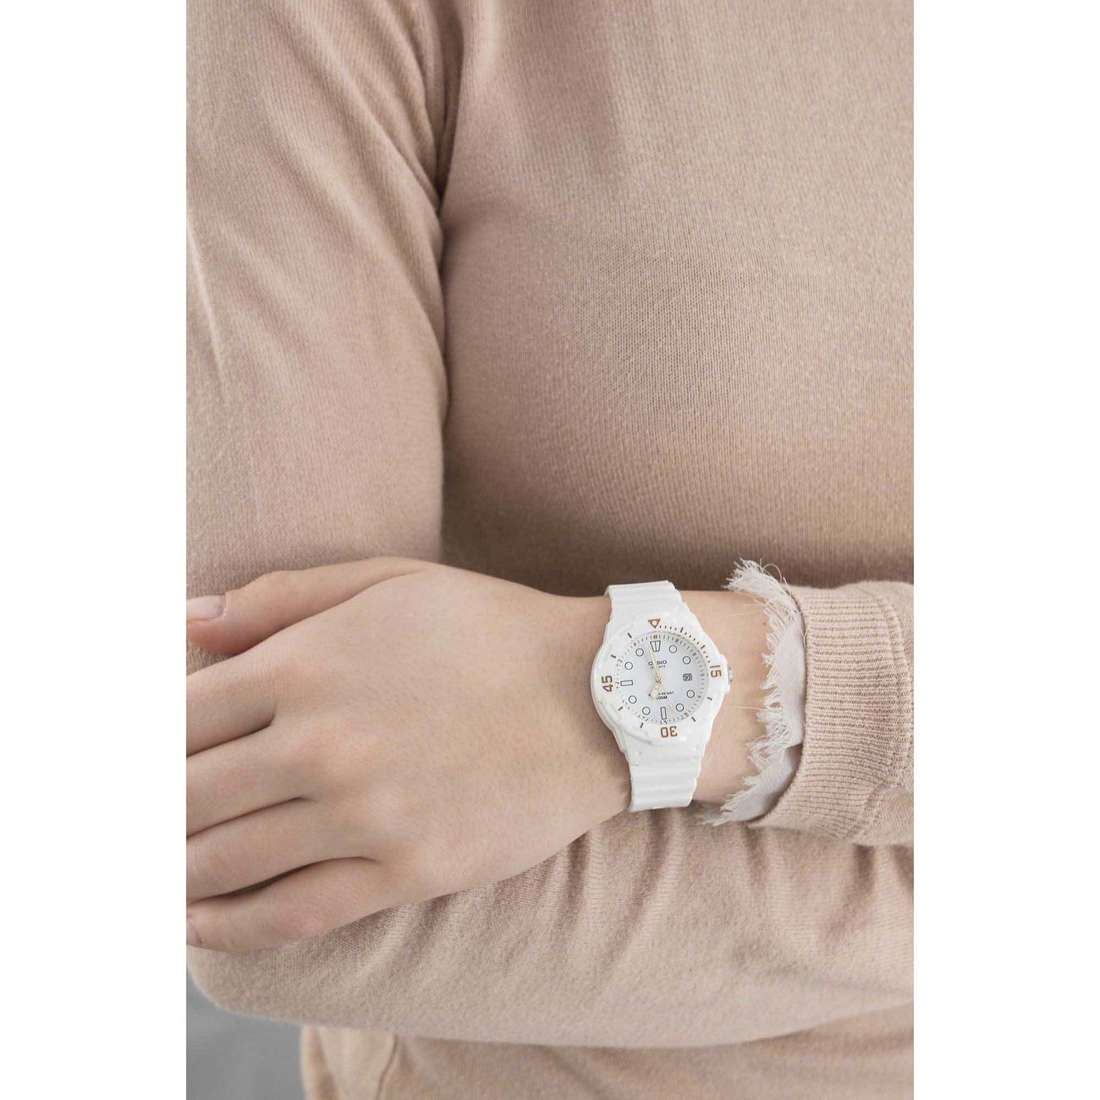 Casio seul le temps Casio Collection femme LRW-200H-7E2VEF indosso